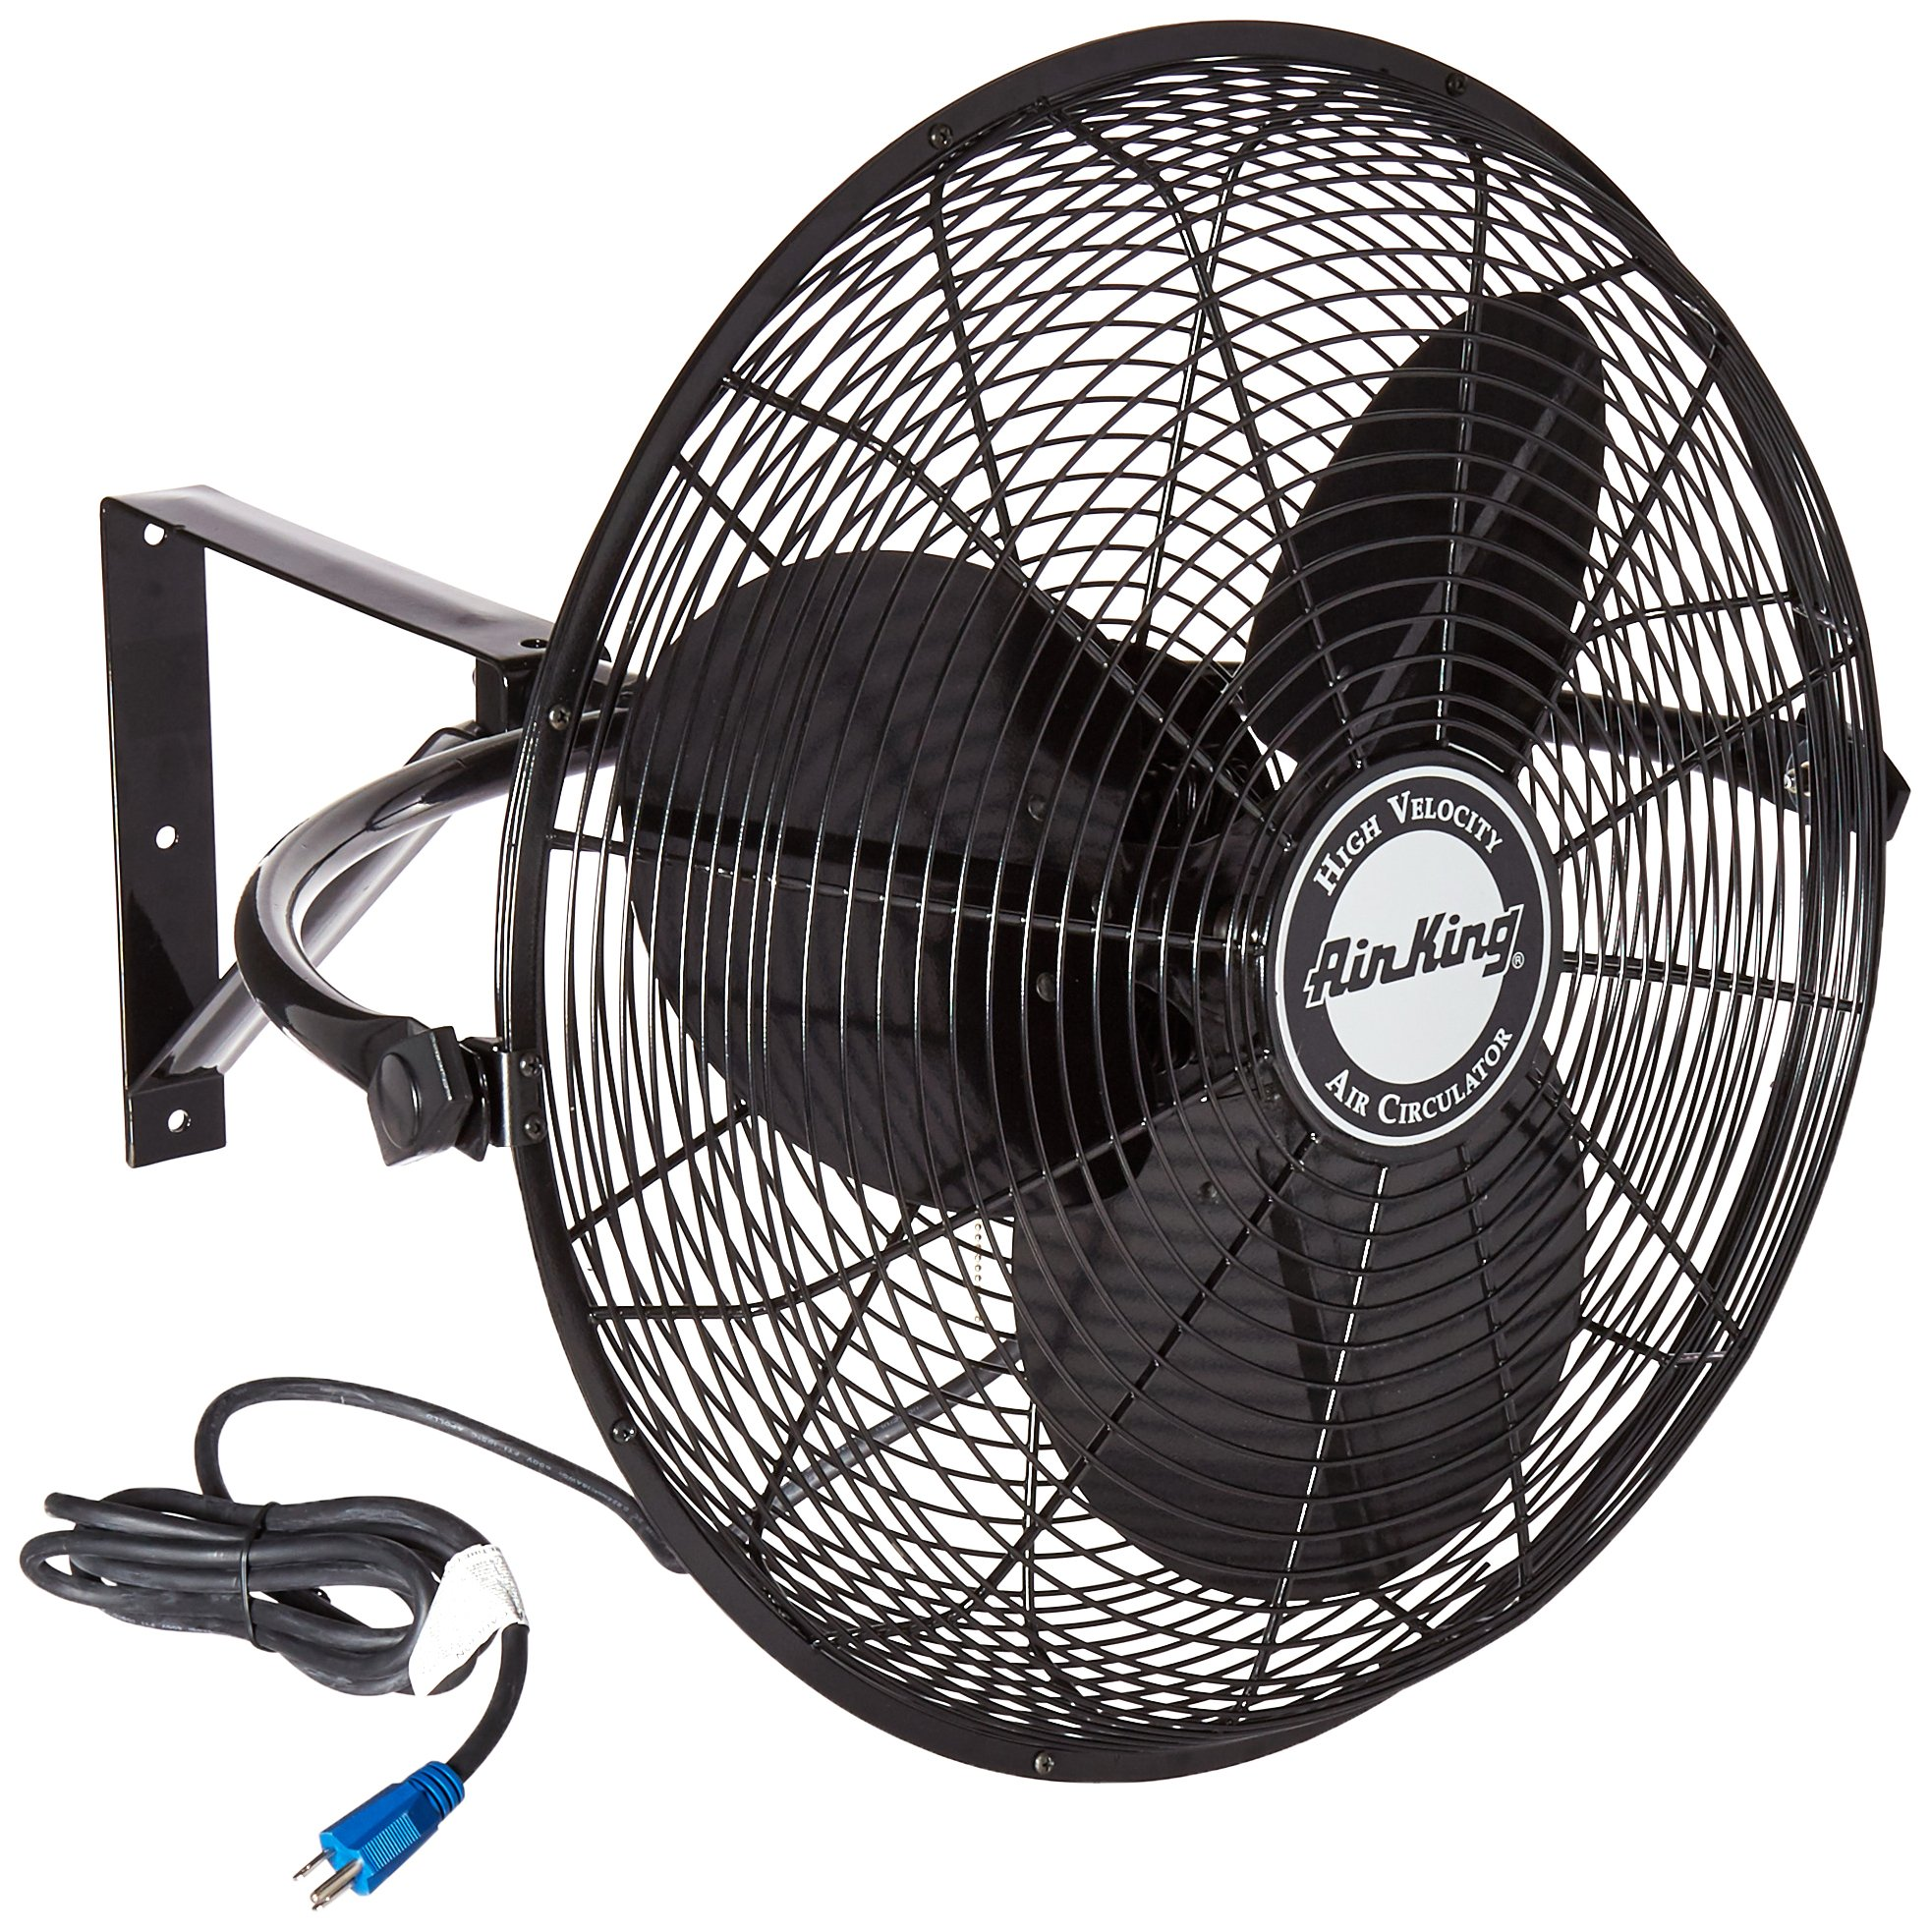 Air King 9020 1/6 HP Industrial Grade Wall Mount Fan, 20-Inch by Air King